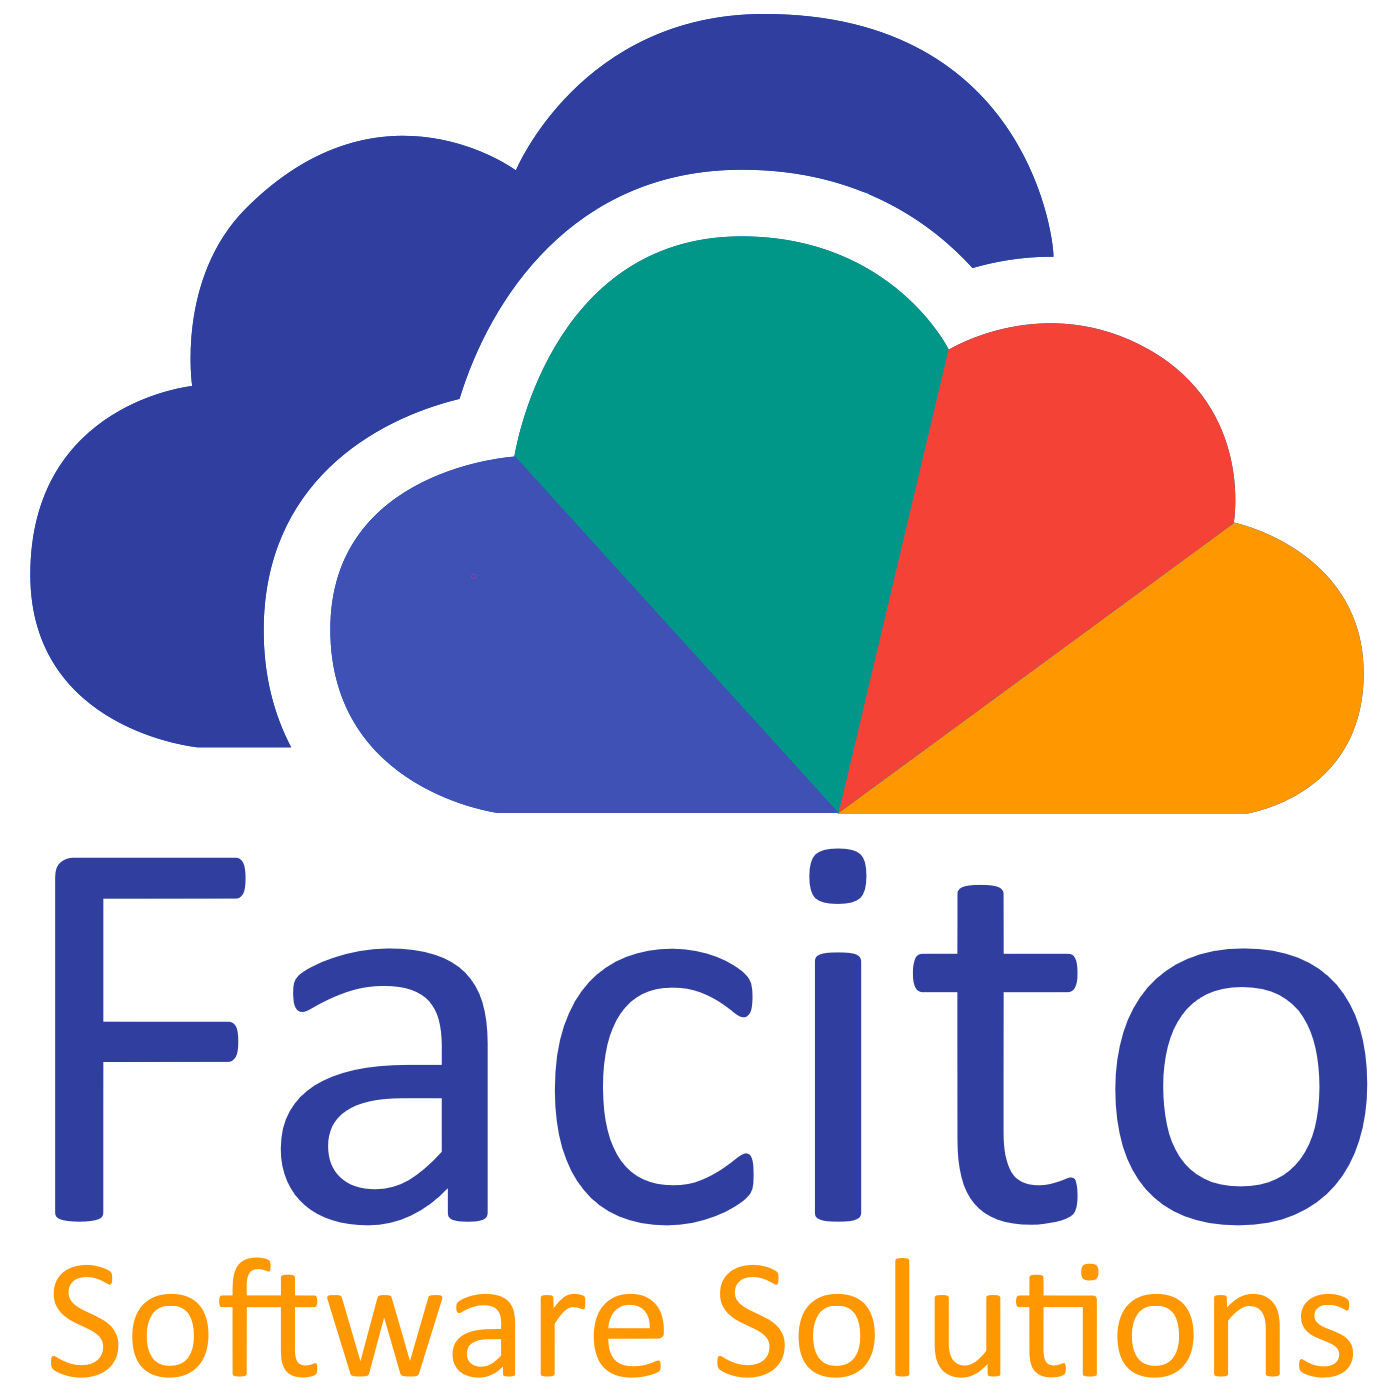 Facito Software Solutions